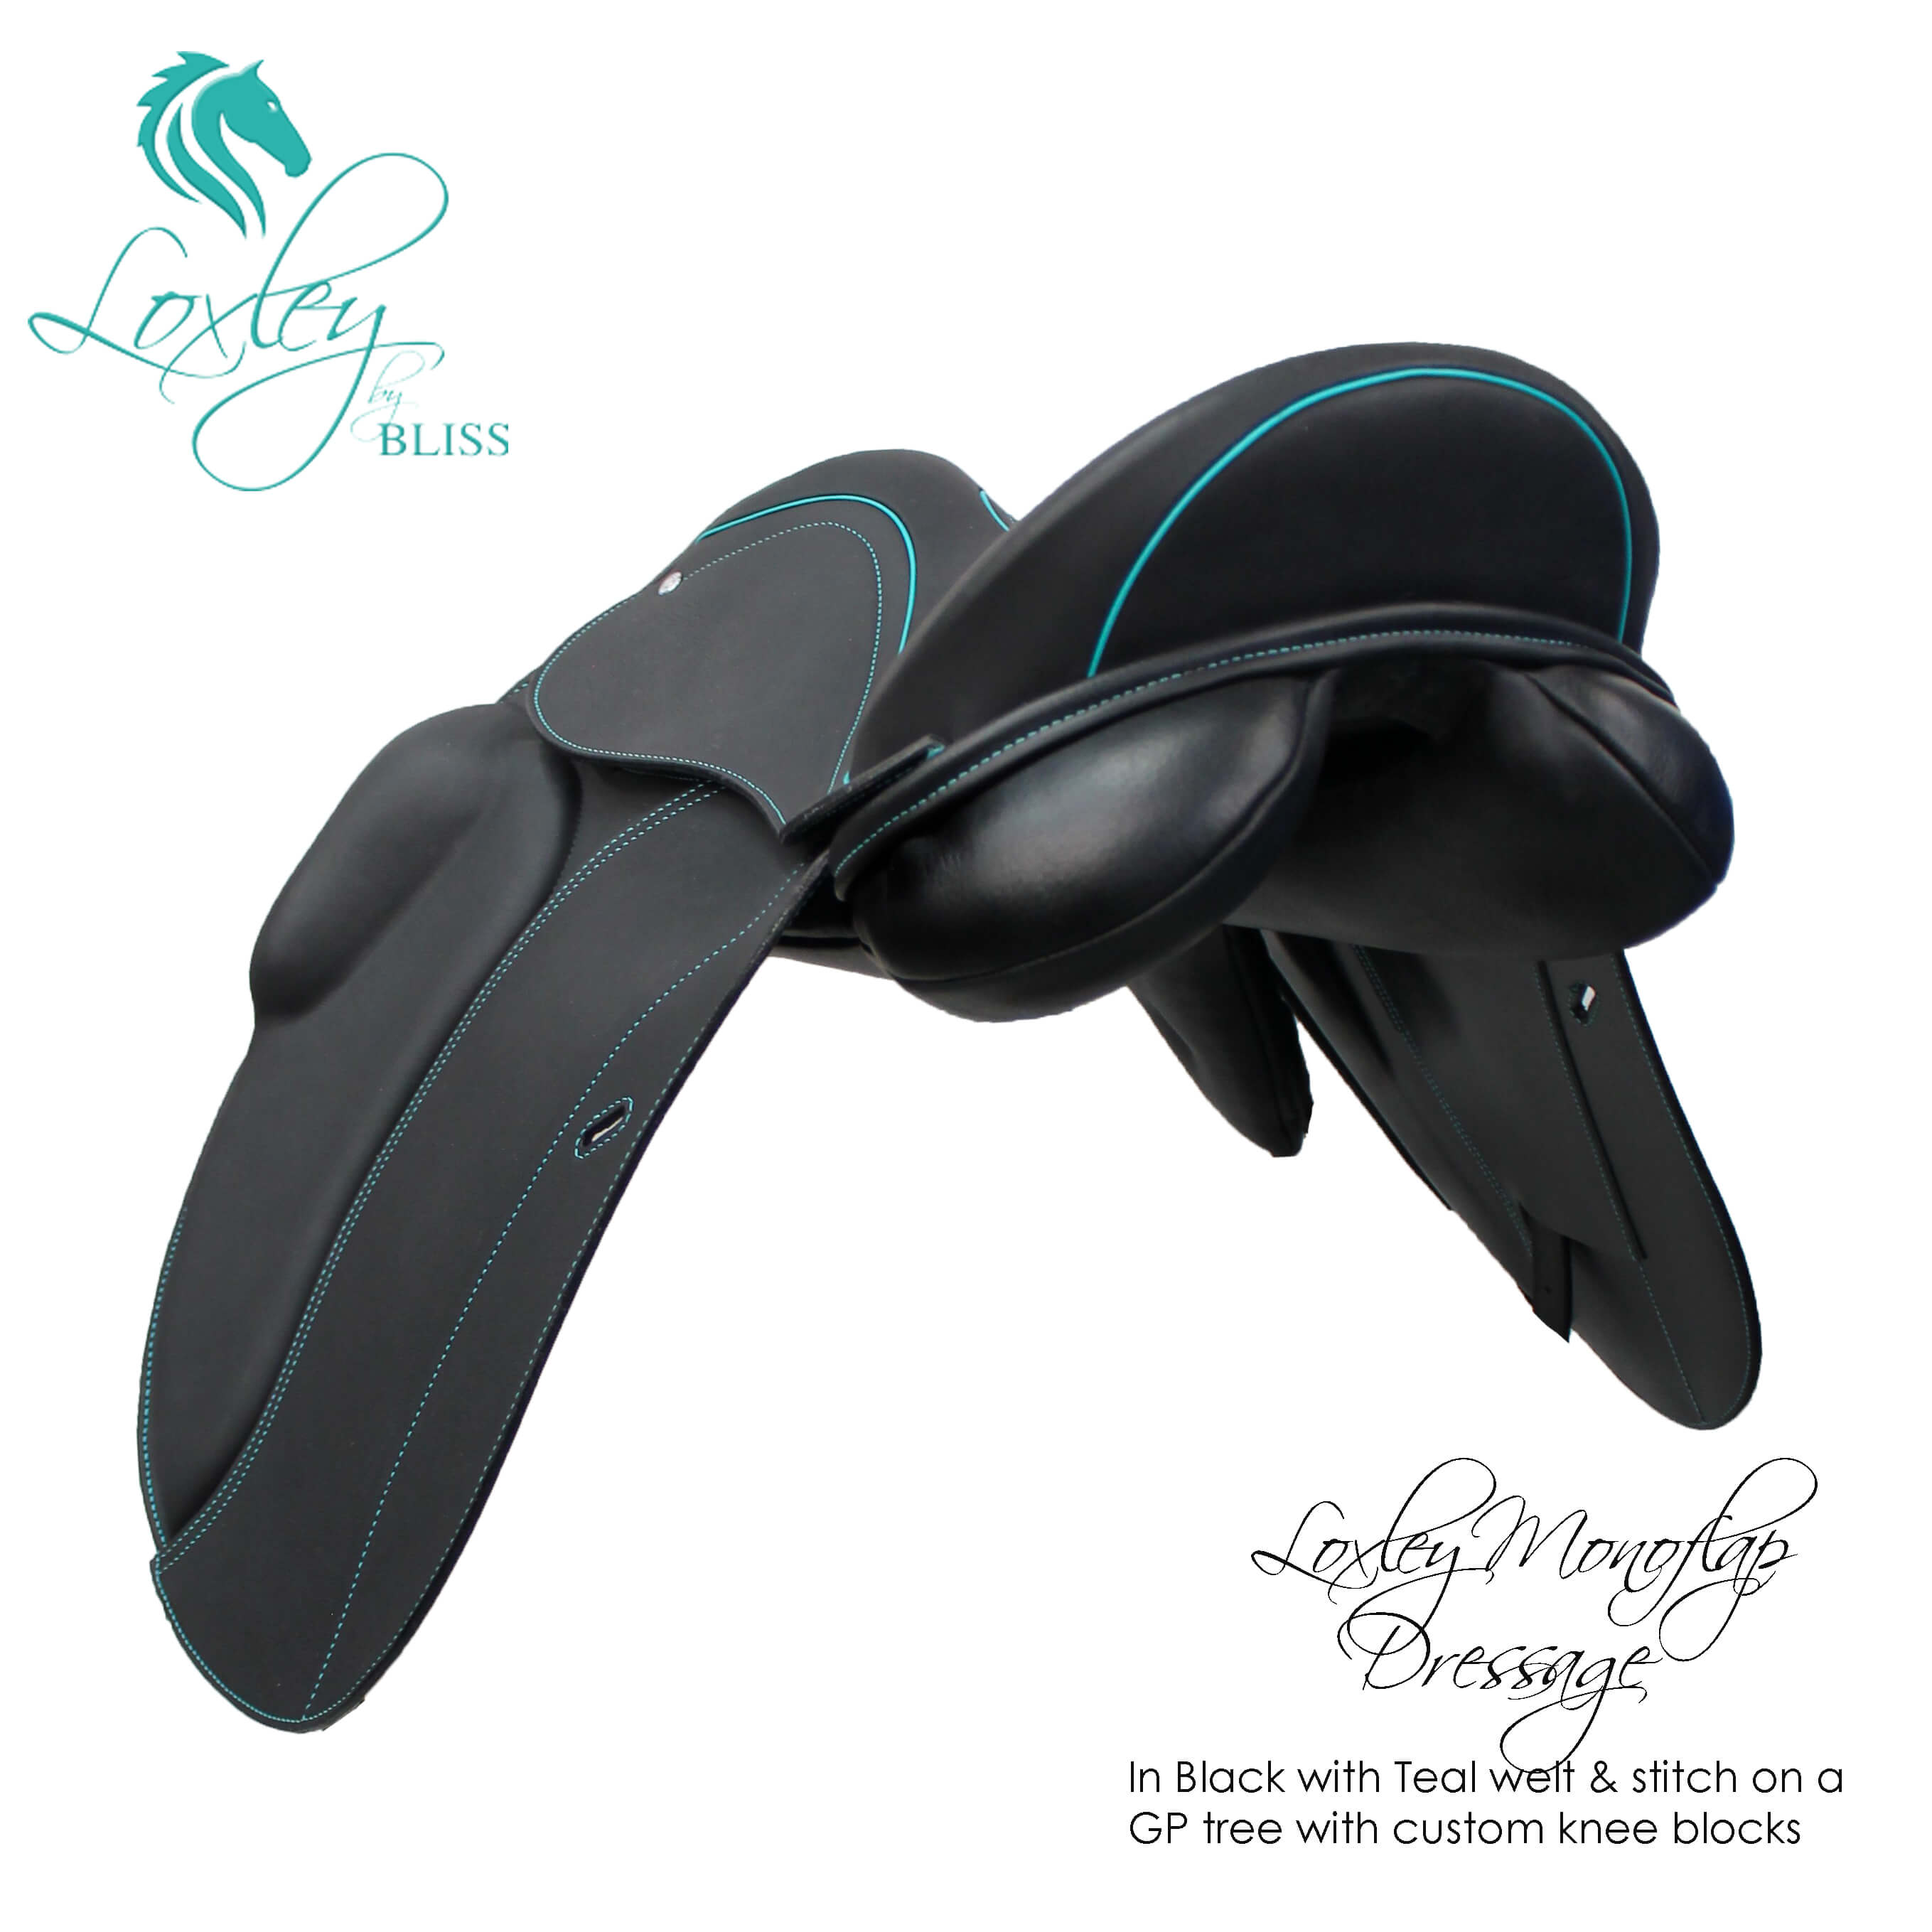 34 Loxley Dressage mono GP tree endurance block black teal 34